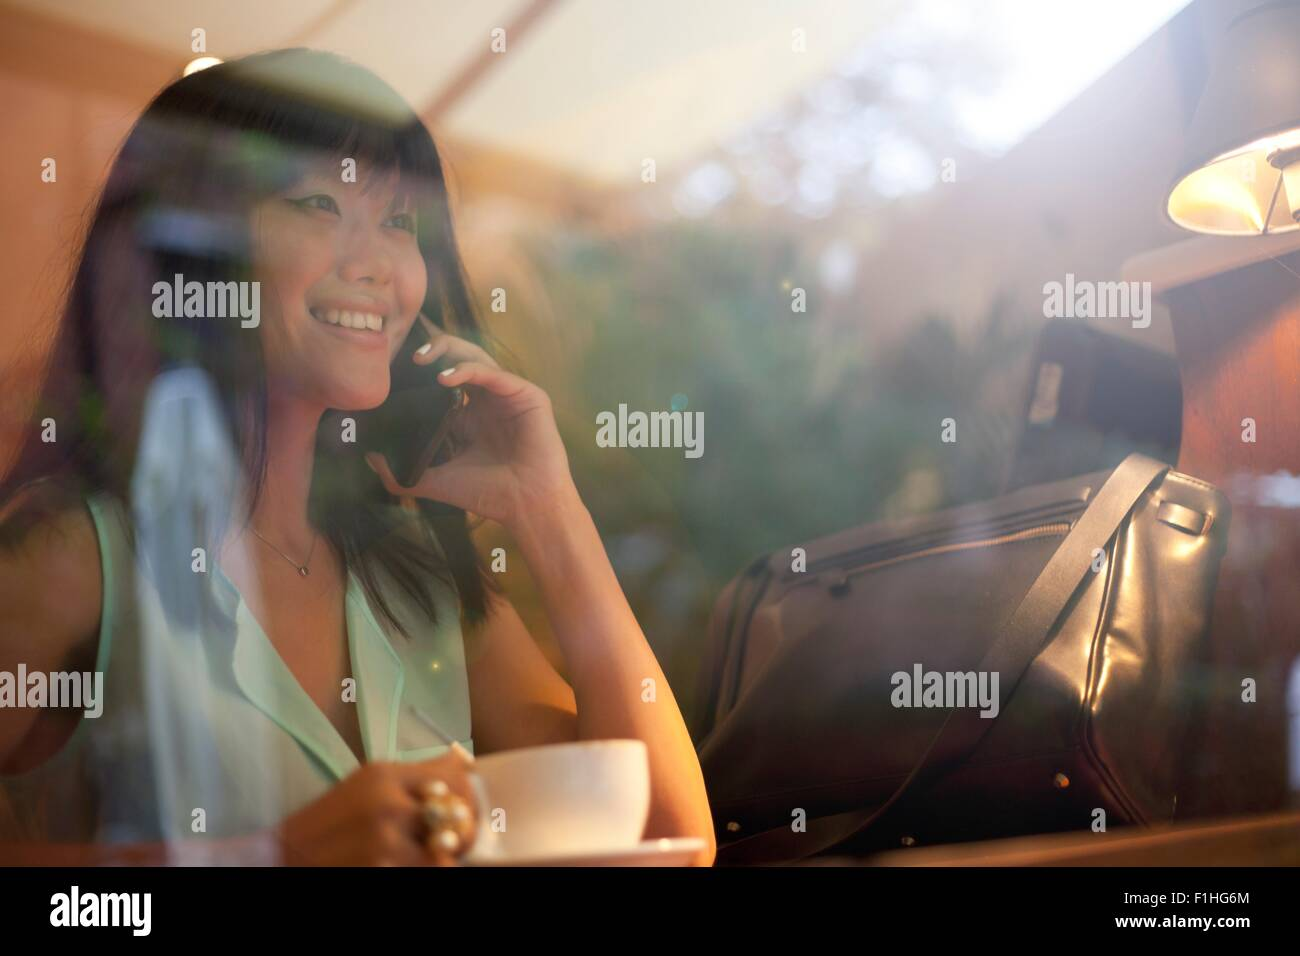 Young woman drinking coffee in cafe, using smartphone, Shanghai, China - Stock Image